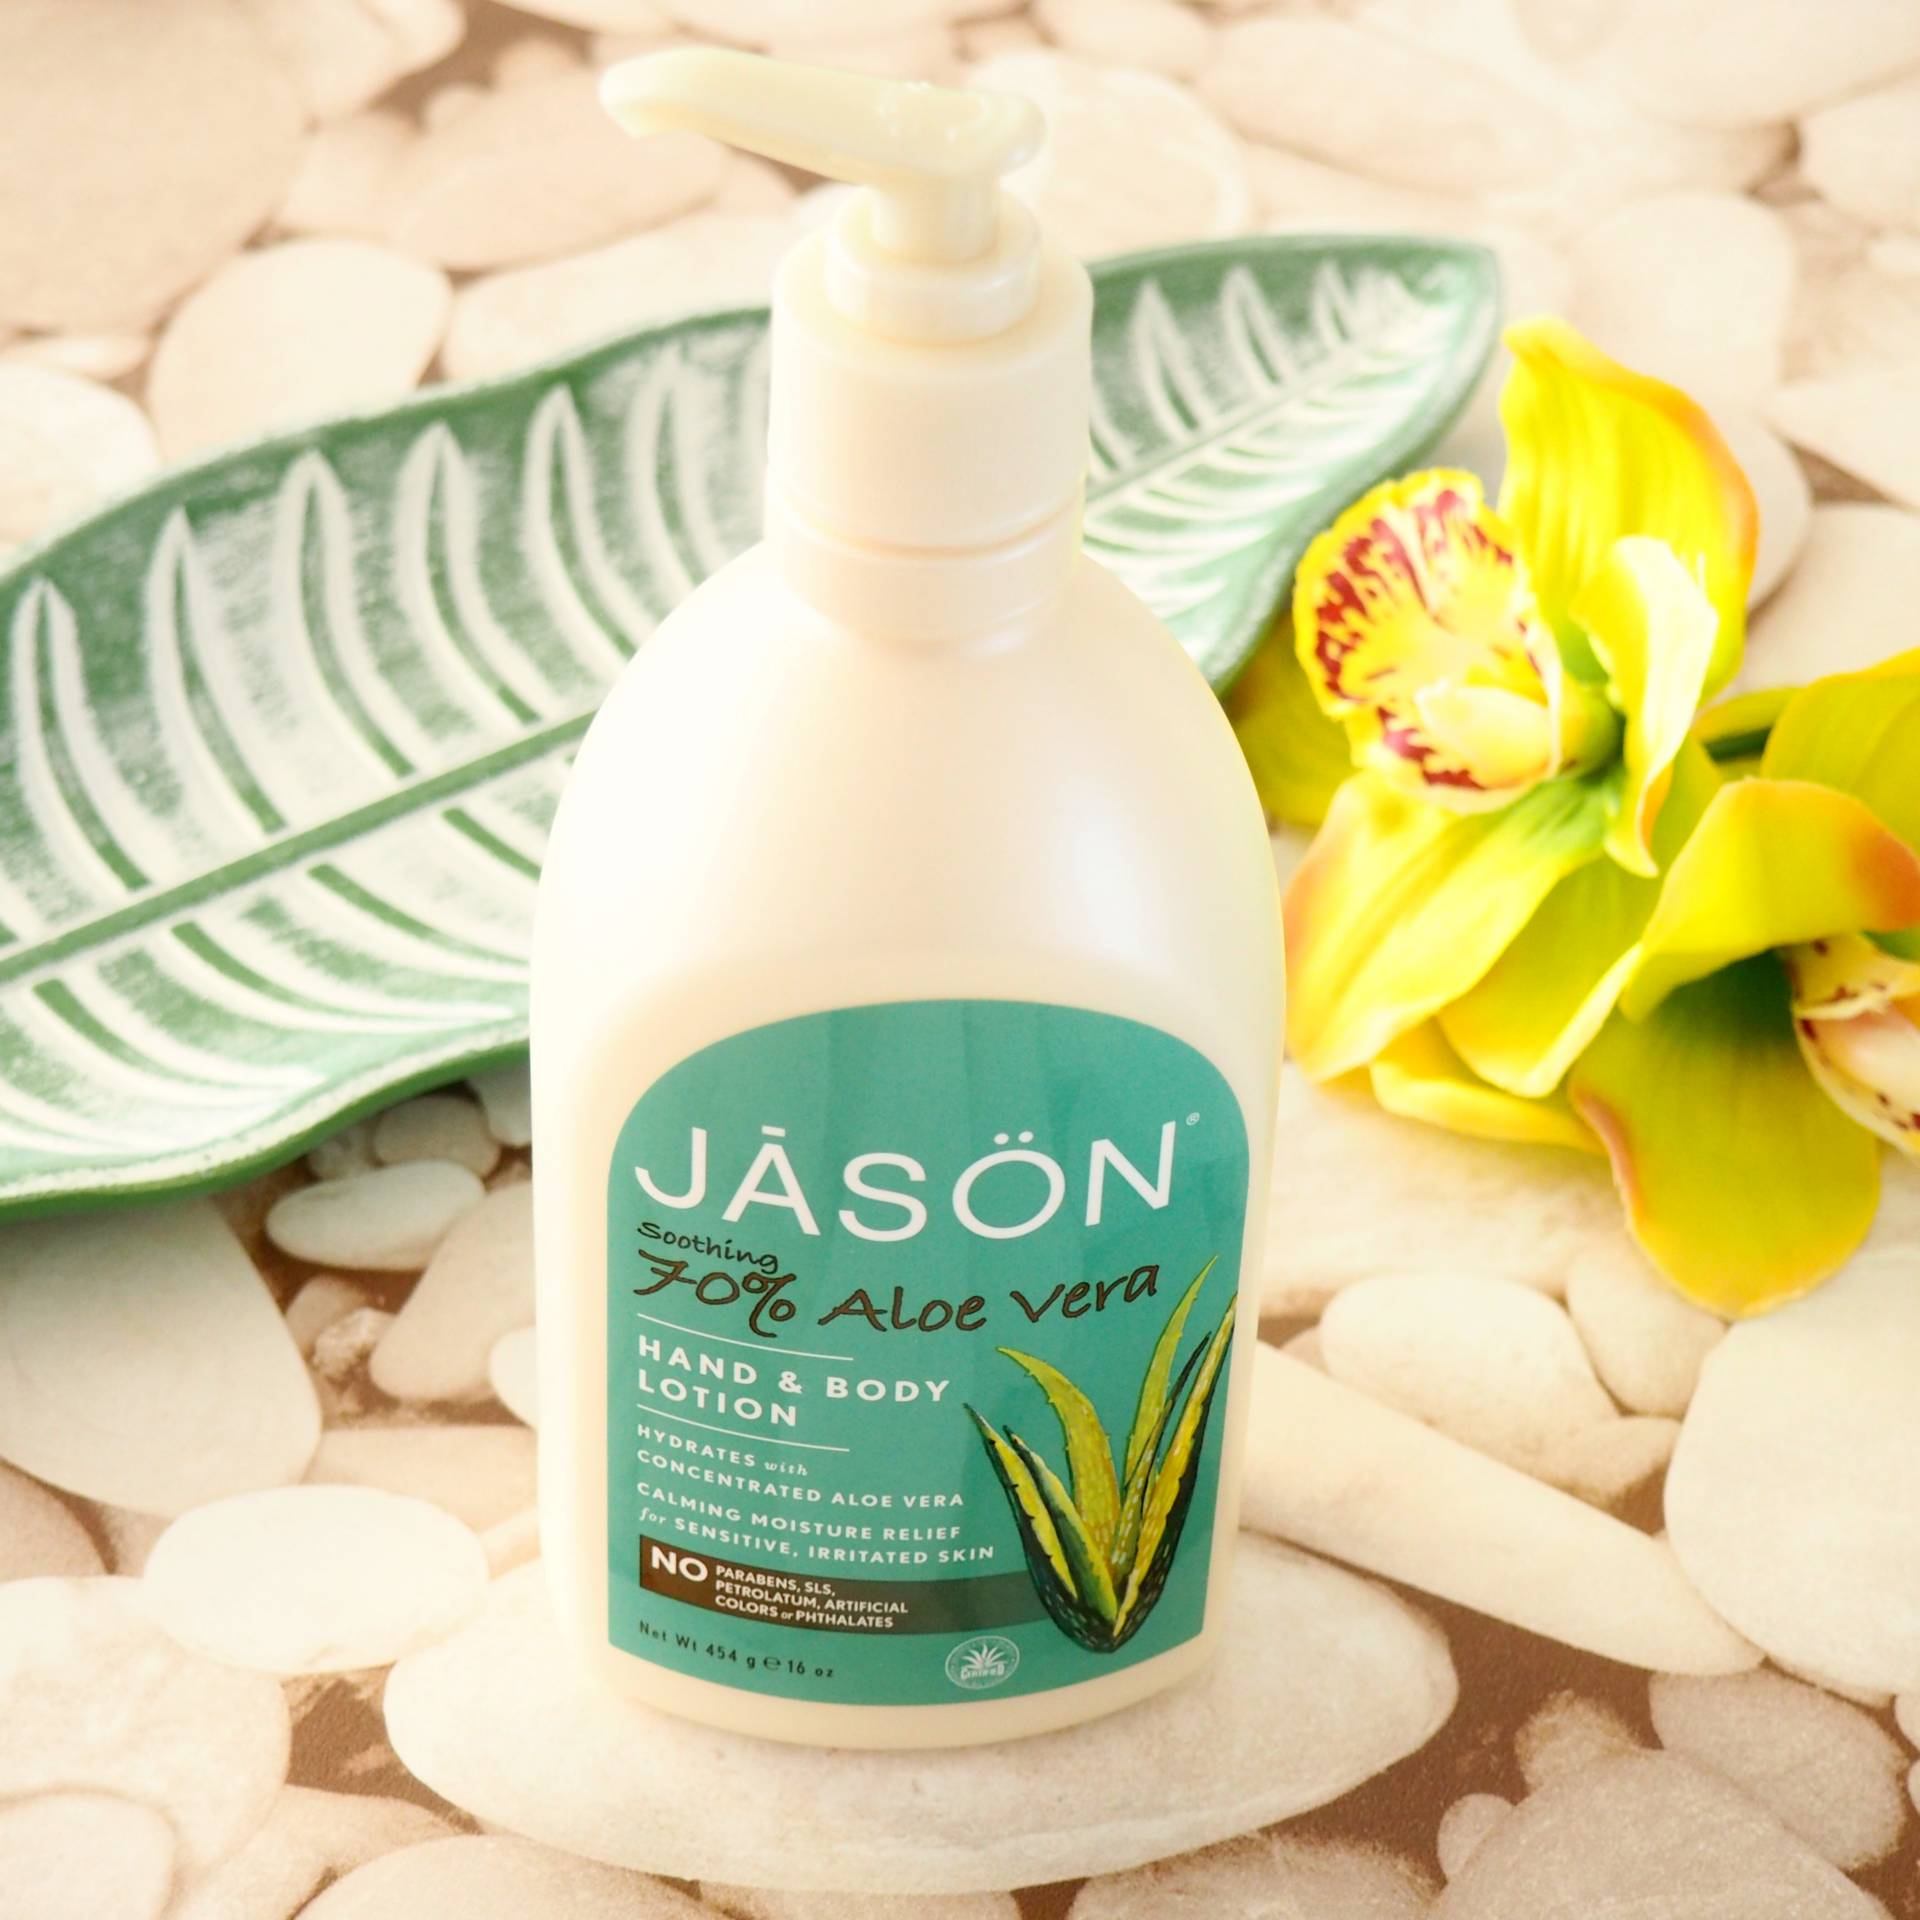 Jason Aloe Vera Hand and Body Lotion